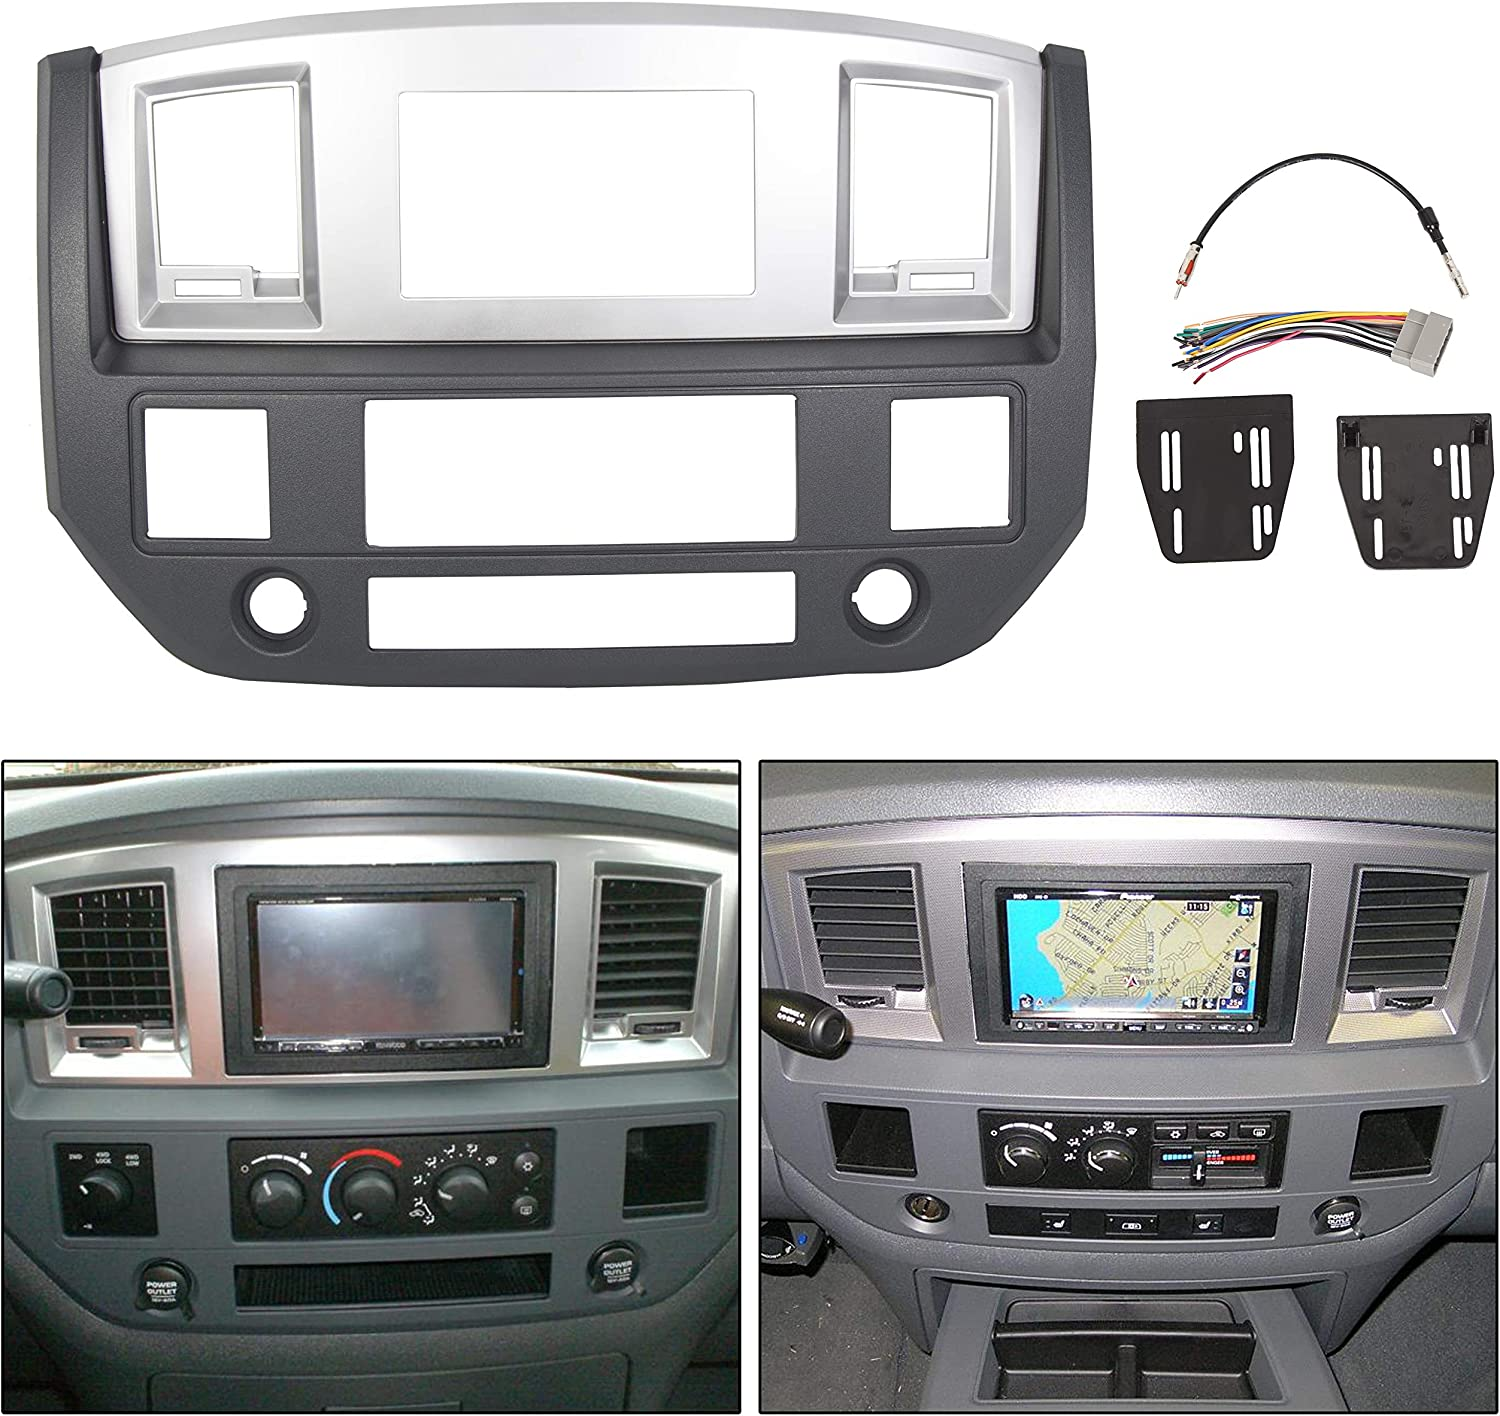 ECOTRIC Stereo Radio Double Din Dash Install Bezel Kit Replacement for 2006-2009 Dodge Ram Truck Silver Slate Gray